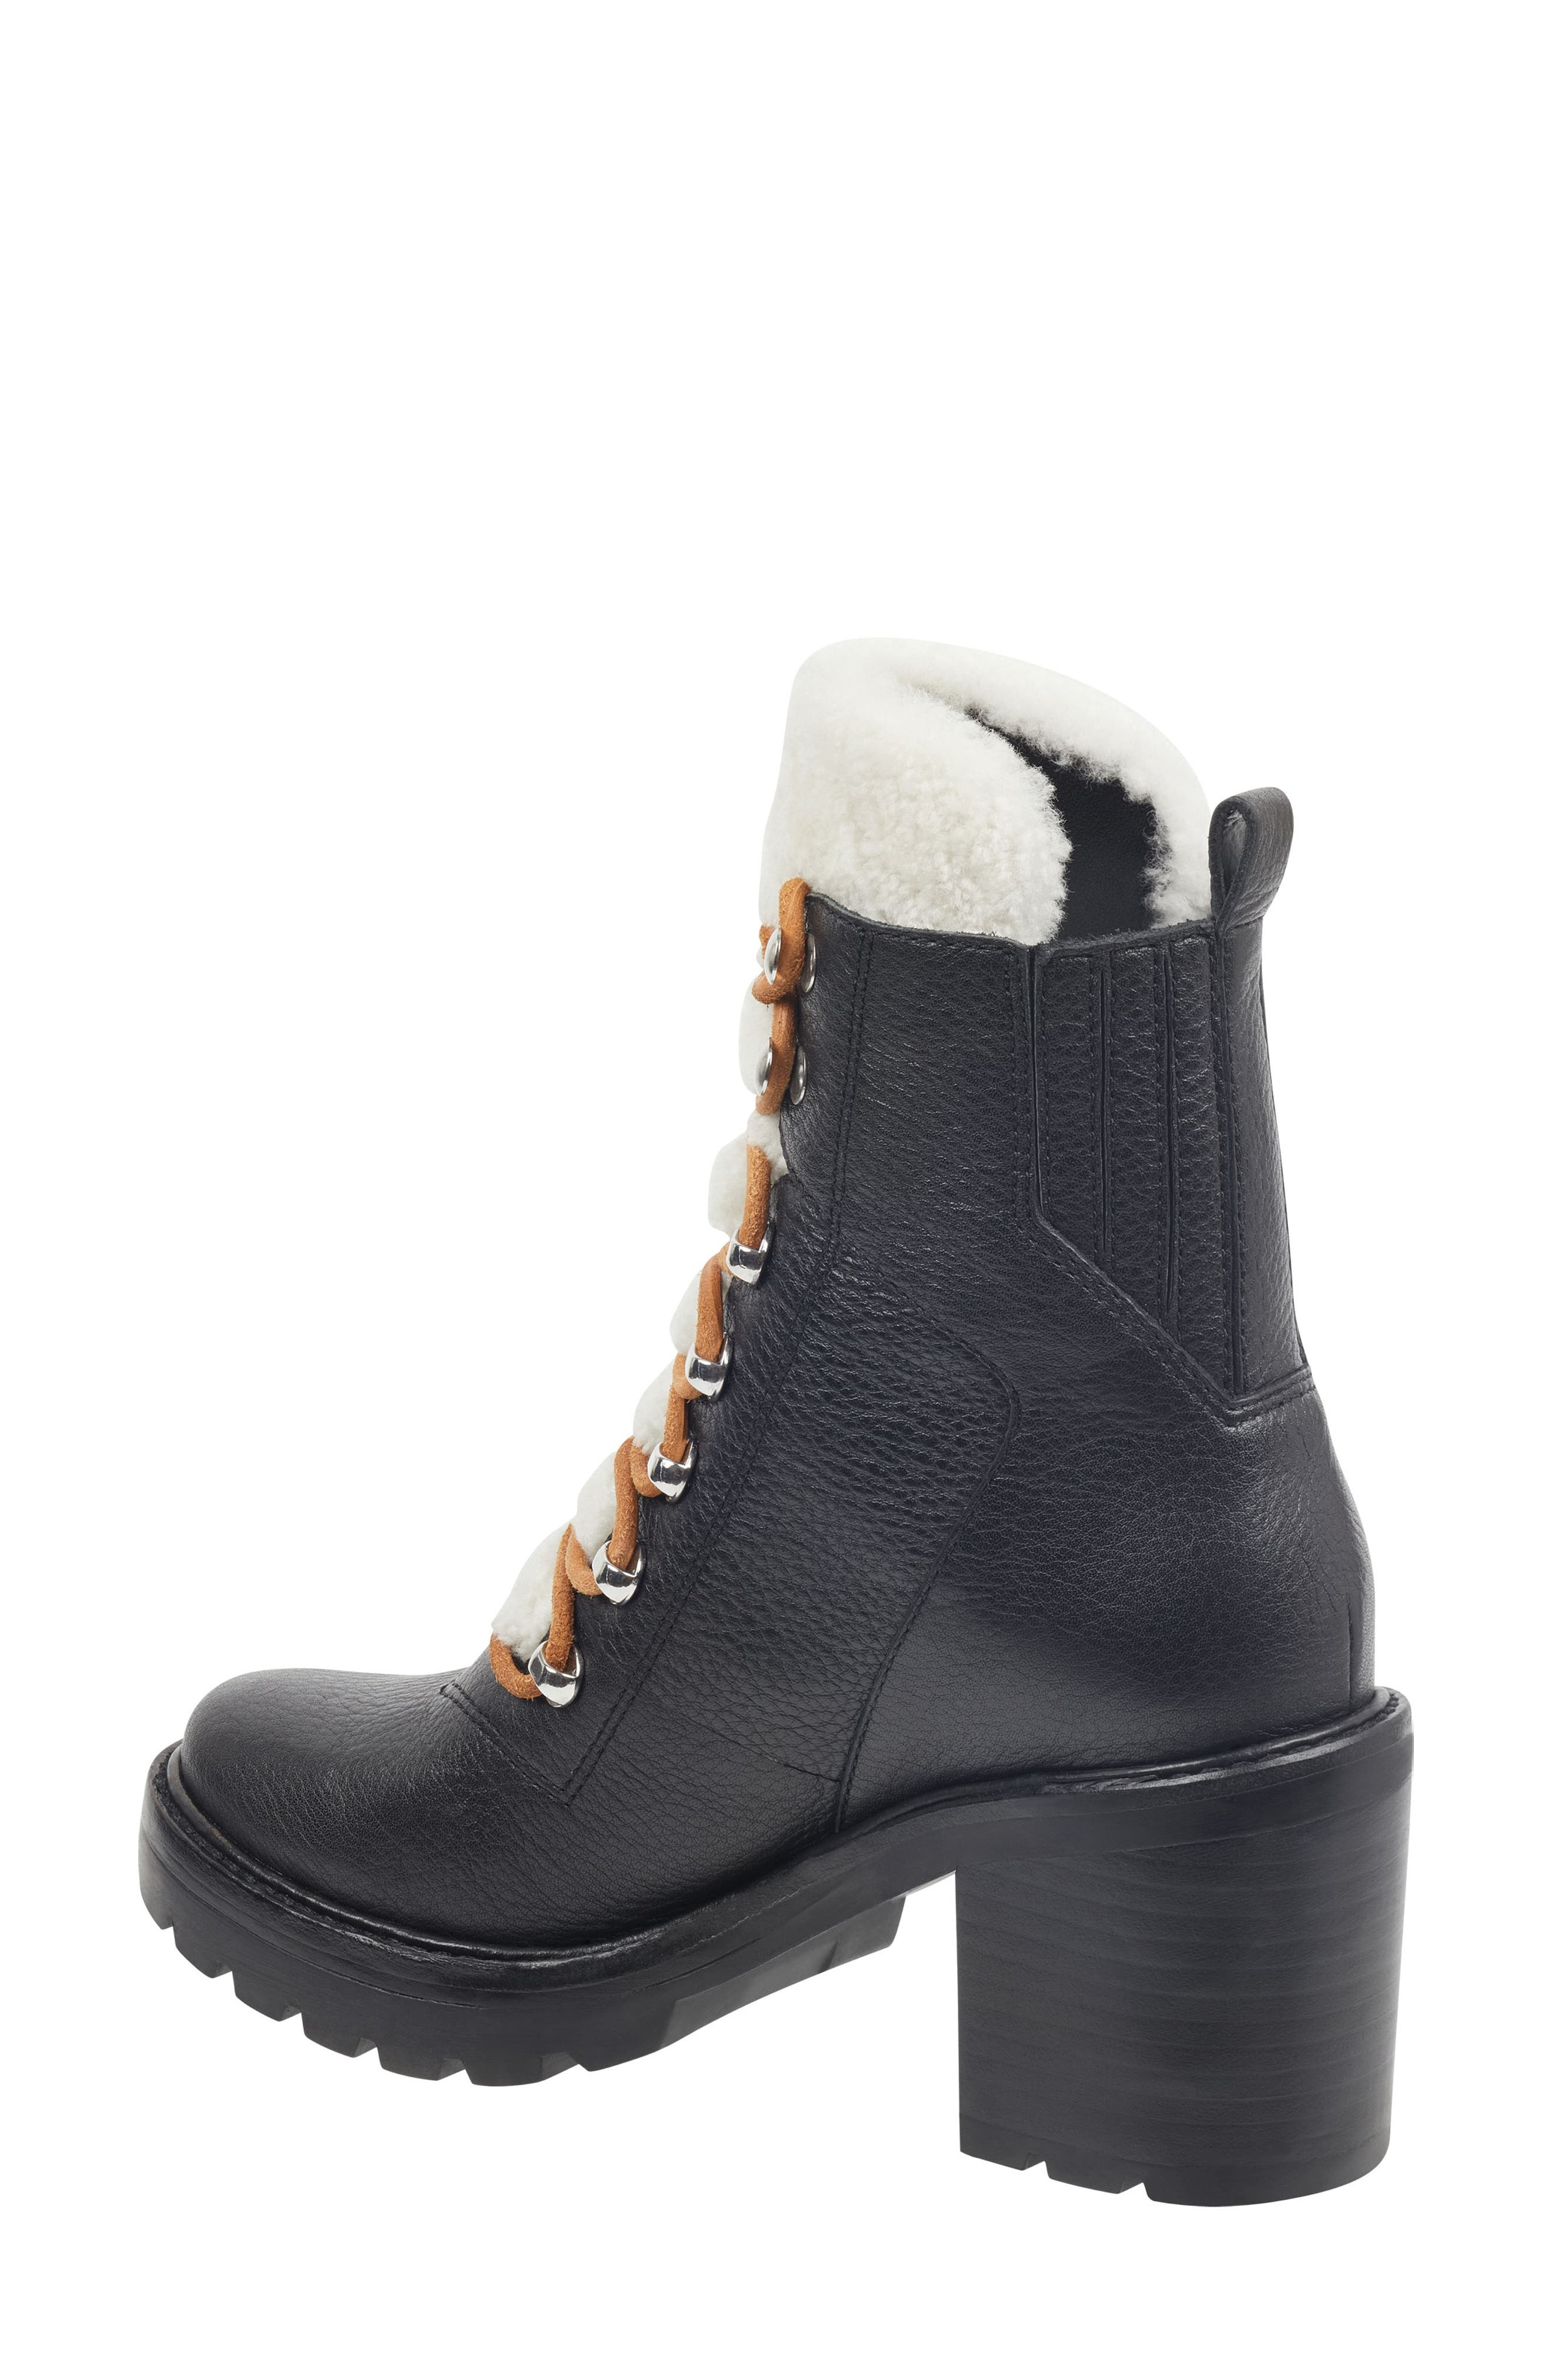 Denise Combat Boot,                             Alternate thumbnail 2, color,                             BLACK/ NATURAL LEATHER